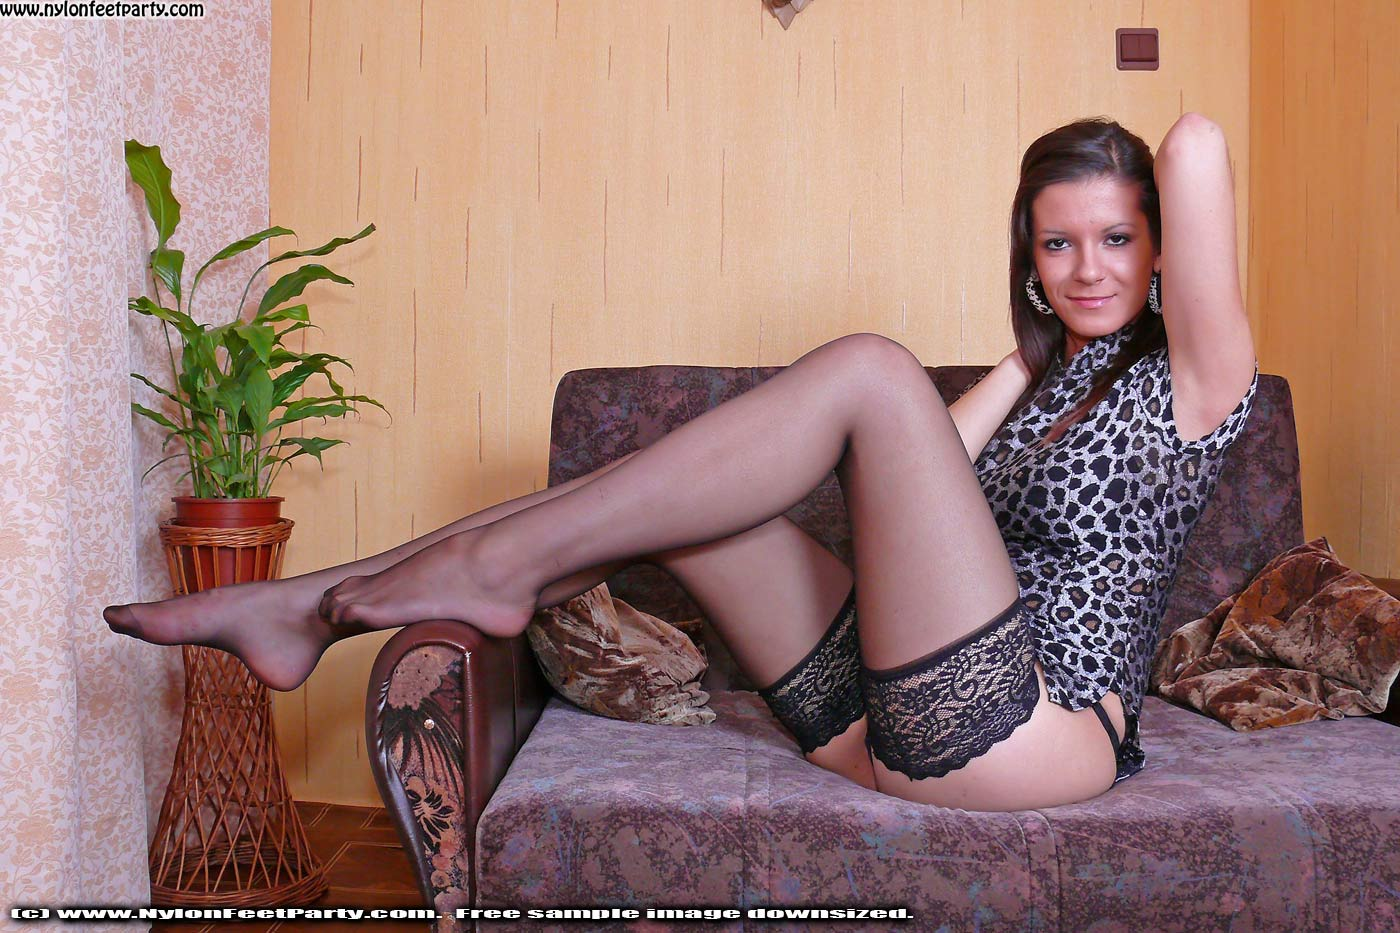 Nylon pantyhose fetish